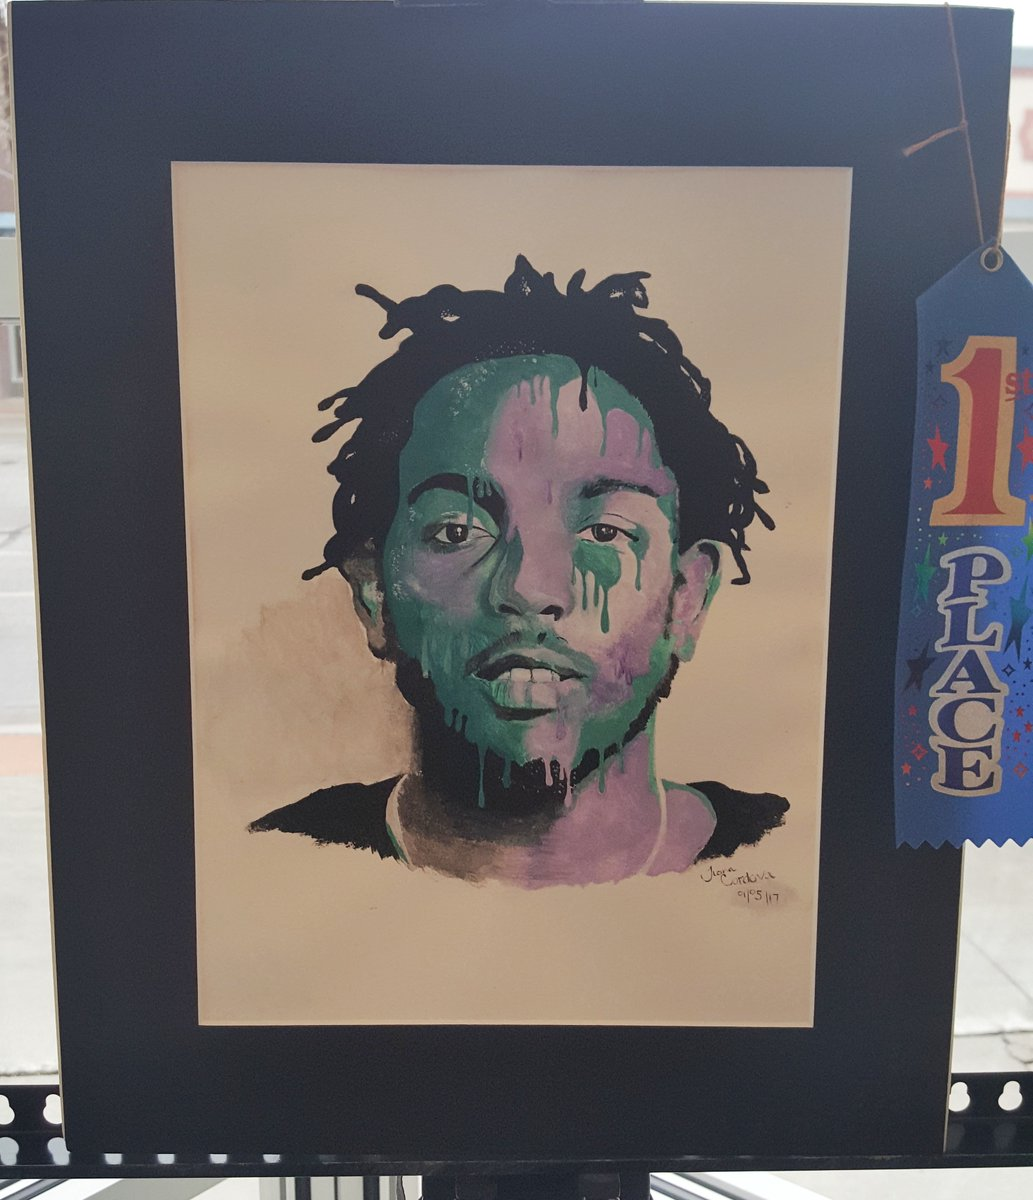 Kendrick Lamar Painting to Hang in U.S. Capitol   Read More: Kendrick Lamar Painting to Hang in U.S. Capitol